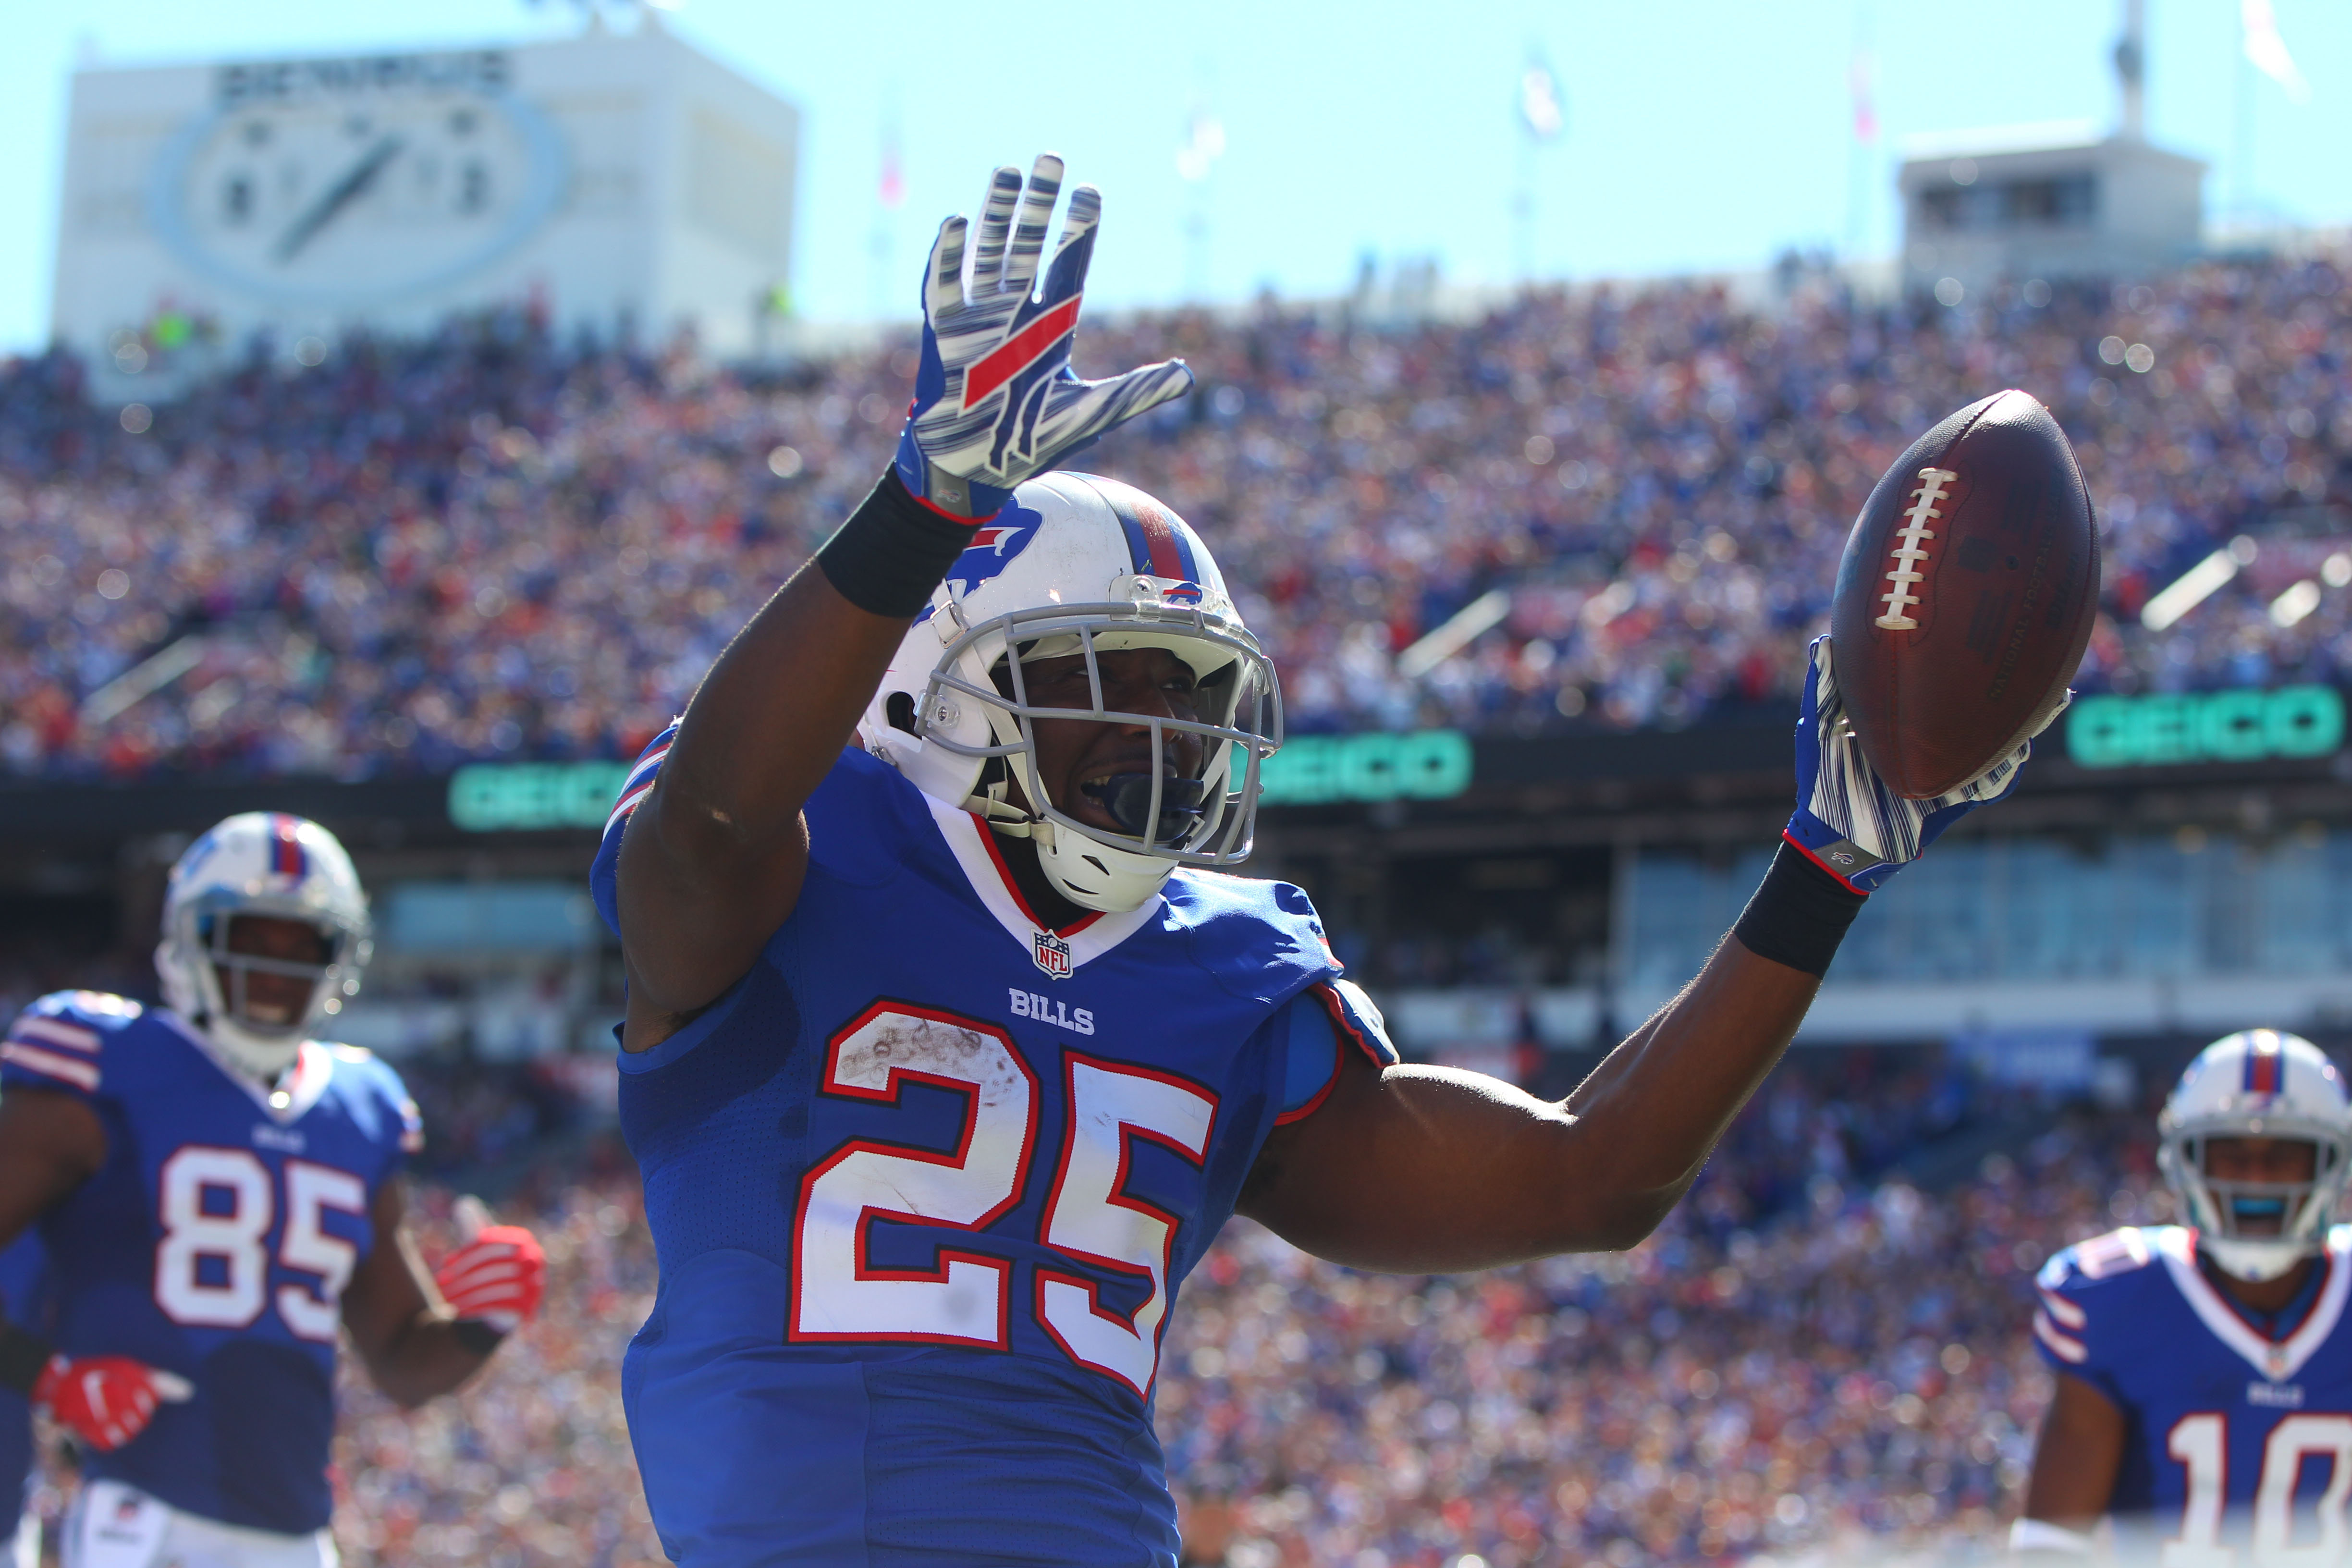 Buffalo Bills running back LeSean McCoy will look to celebrate another touchdown like this one on a warm, but humid day expected Sunday at New Era Field.  (Mark Mulville/Buffalo News)